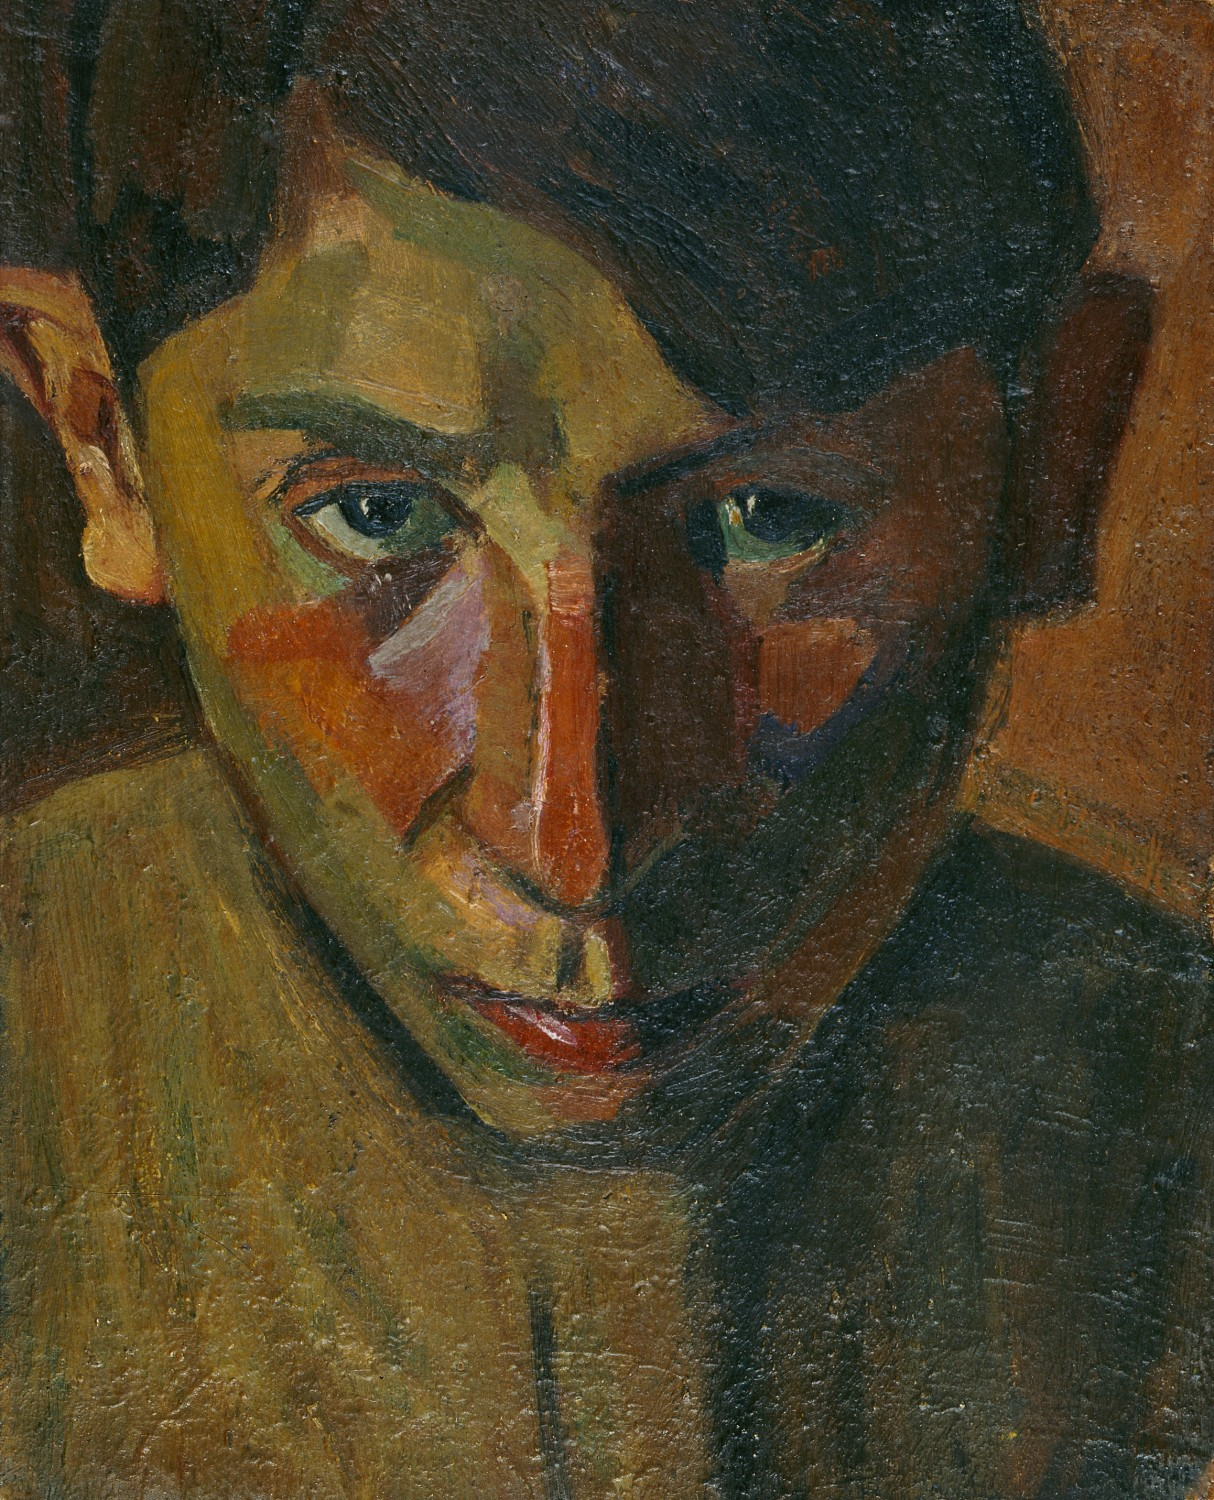 Self-portrait, 1918 — Grégoire Michonze